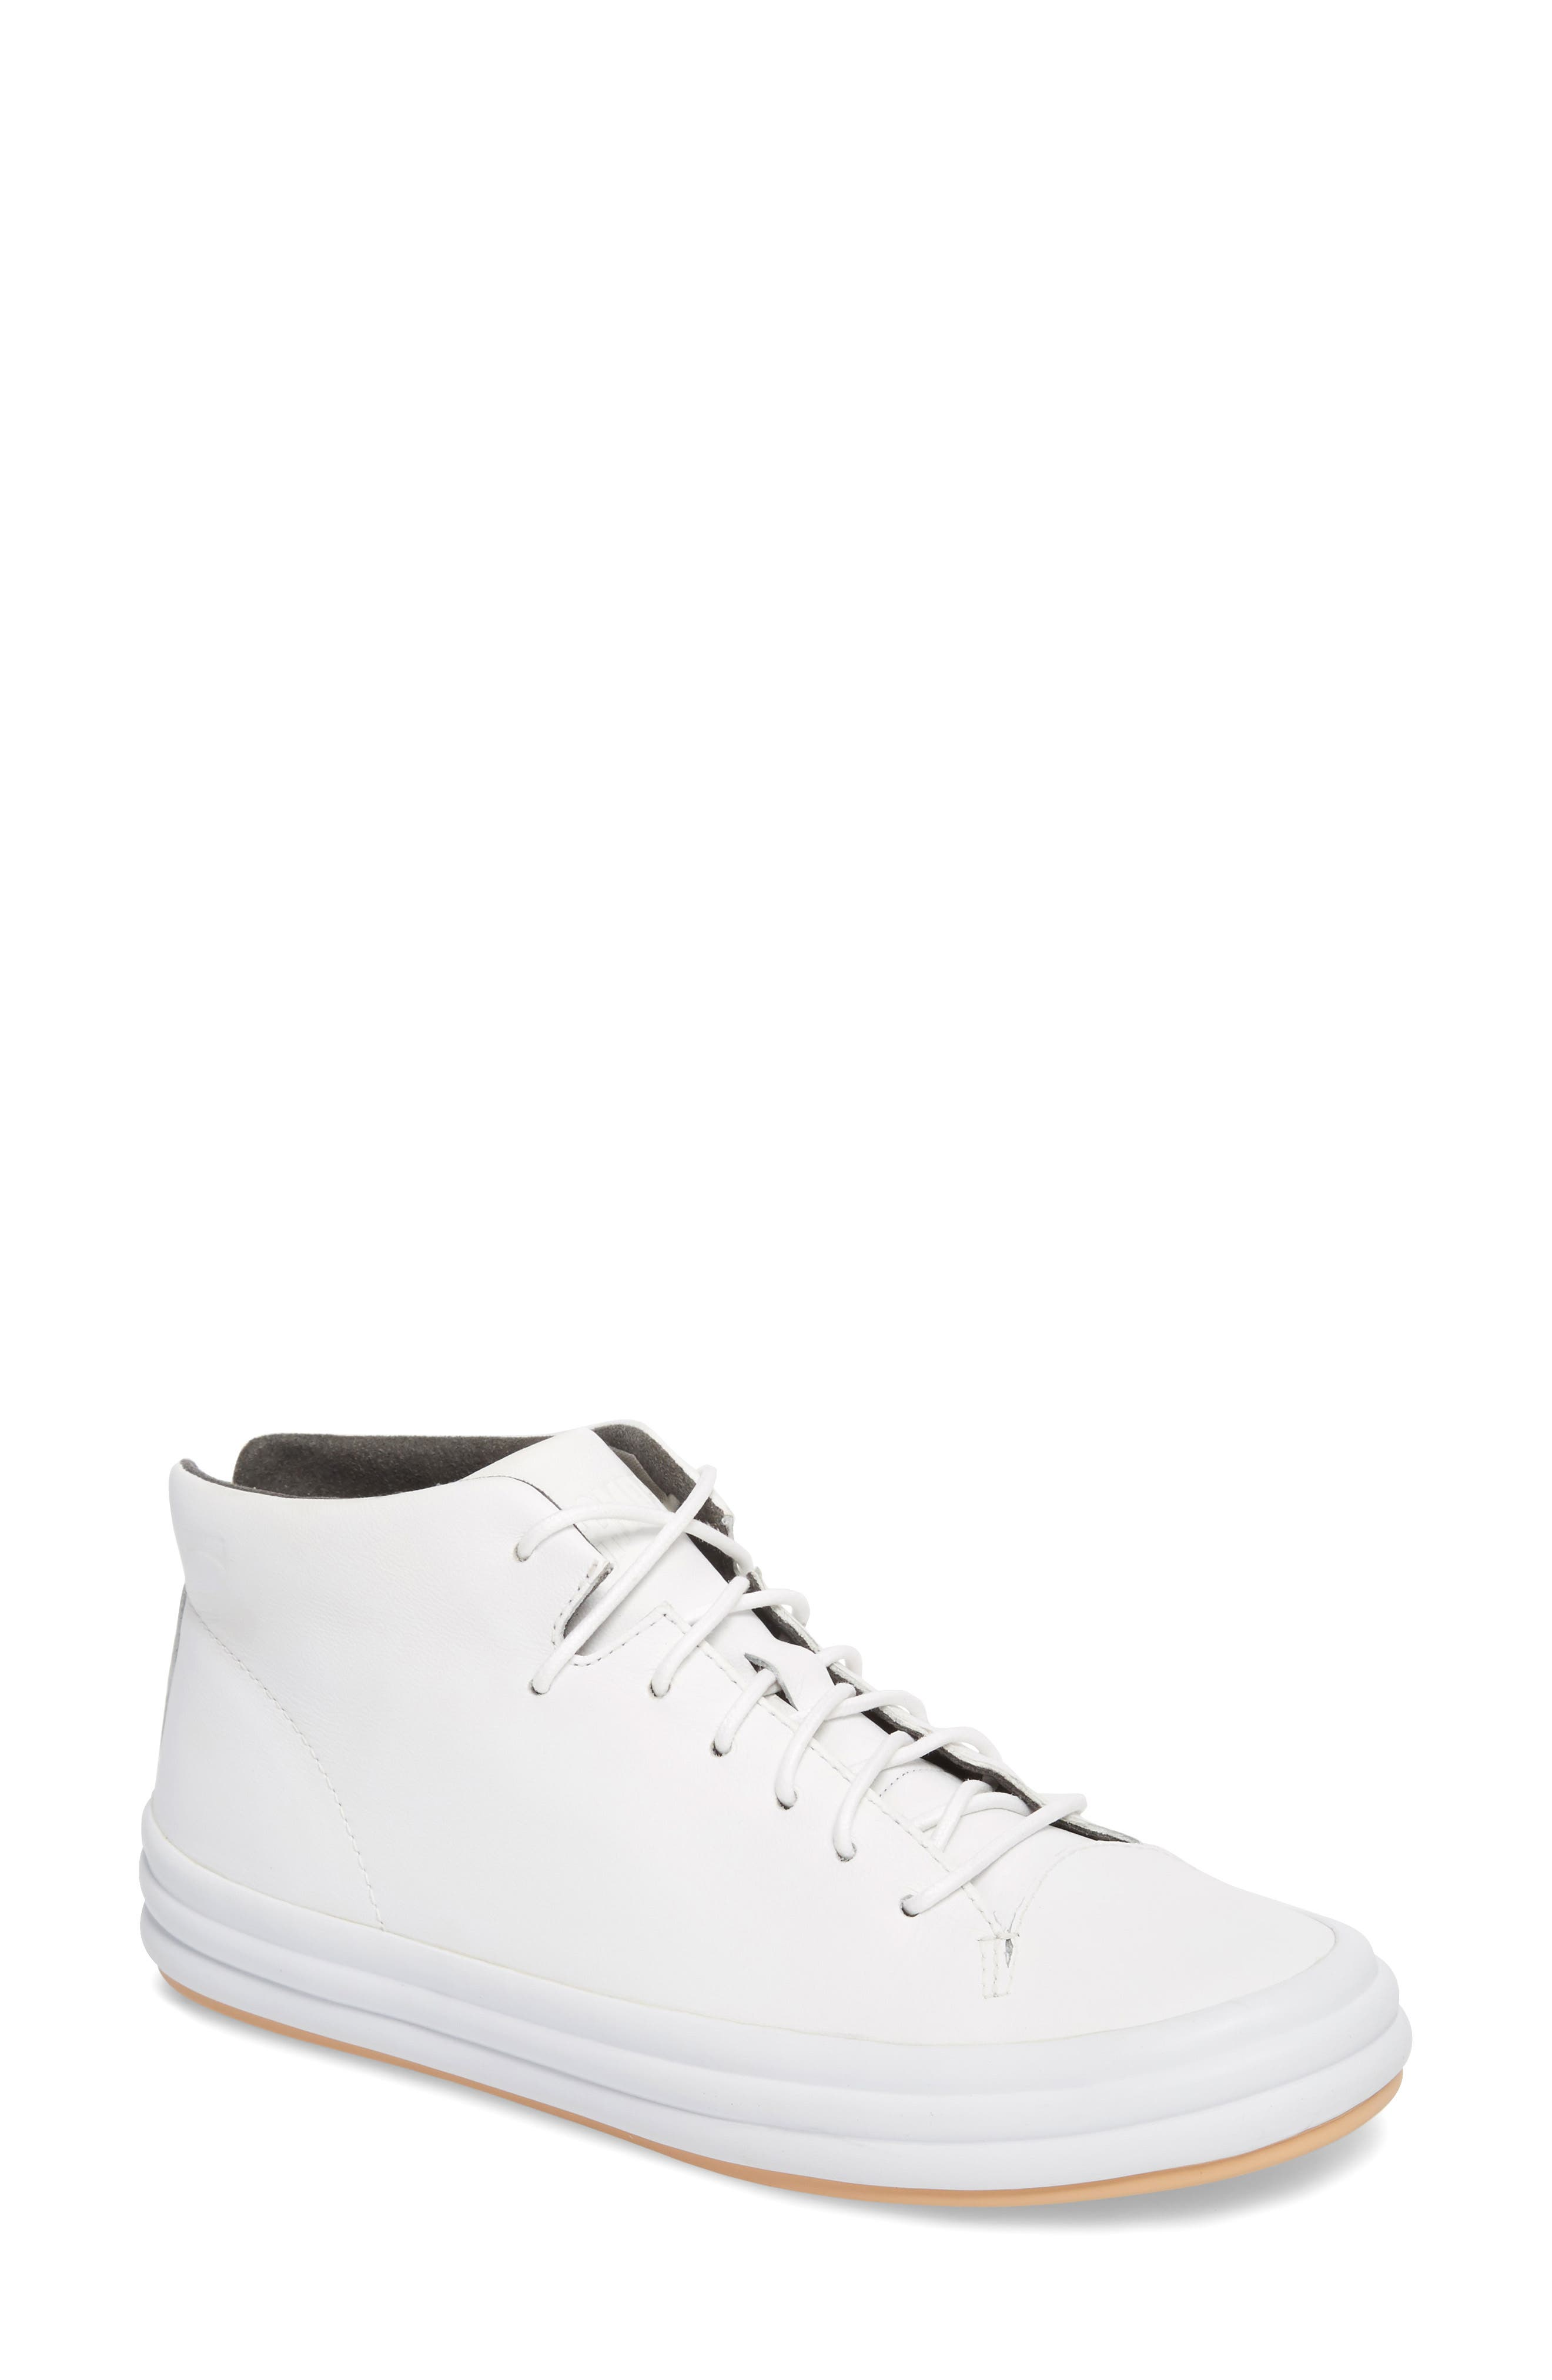 Hoops Mid Top Sneaker,                         Main,                         color, White Natural Leather